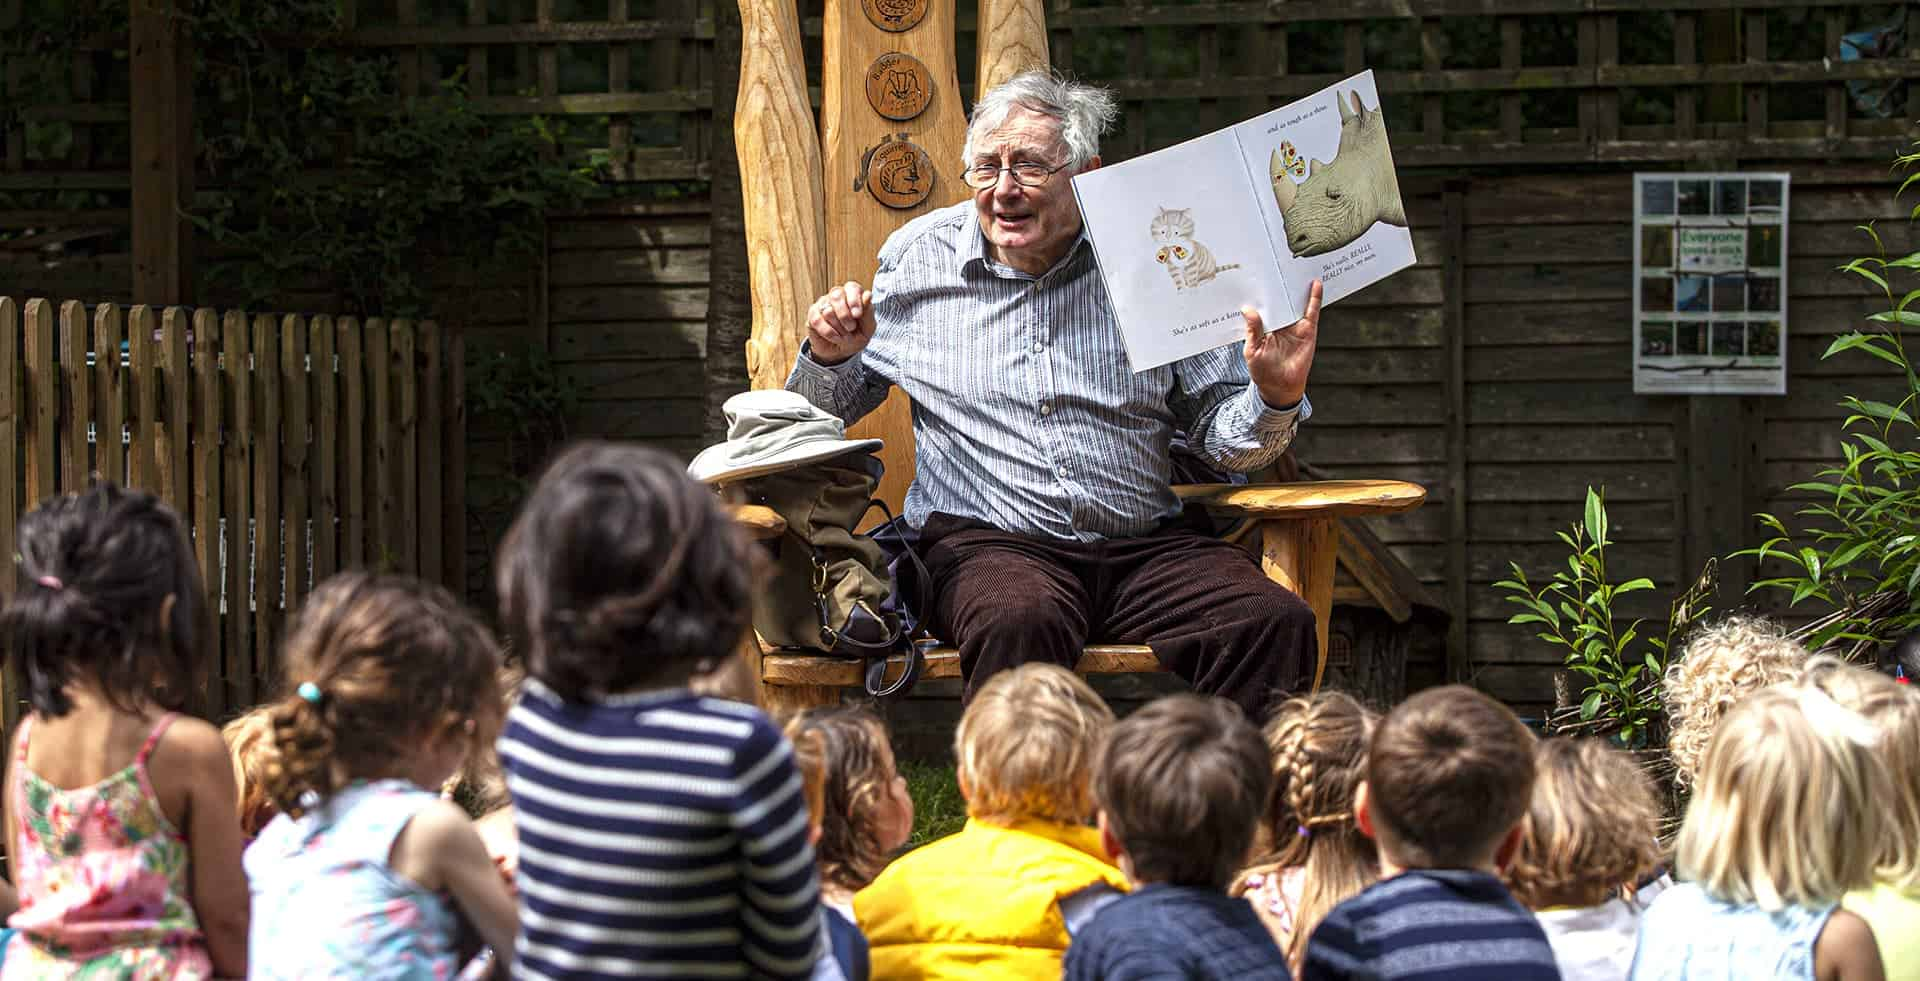 Storytime with the storyteller in the garden at the Nursery